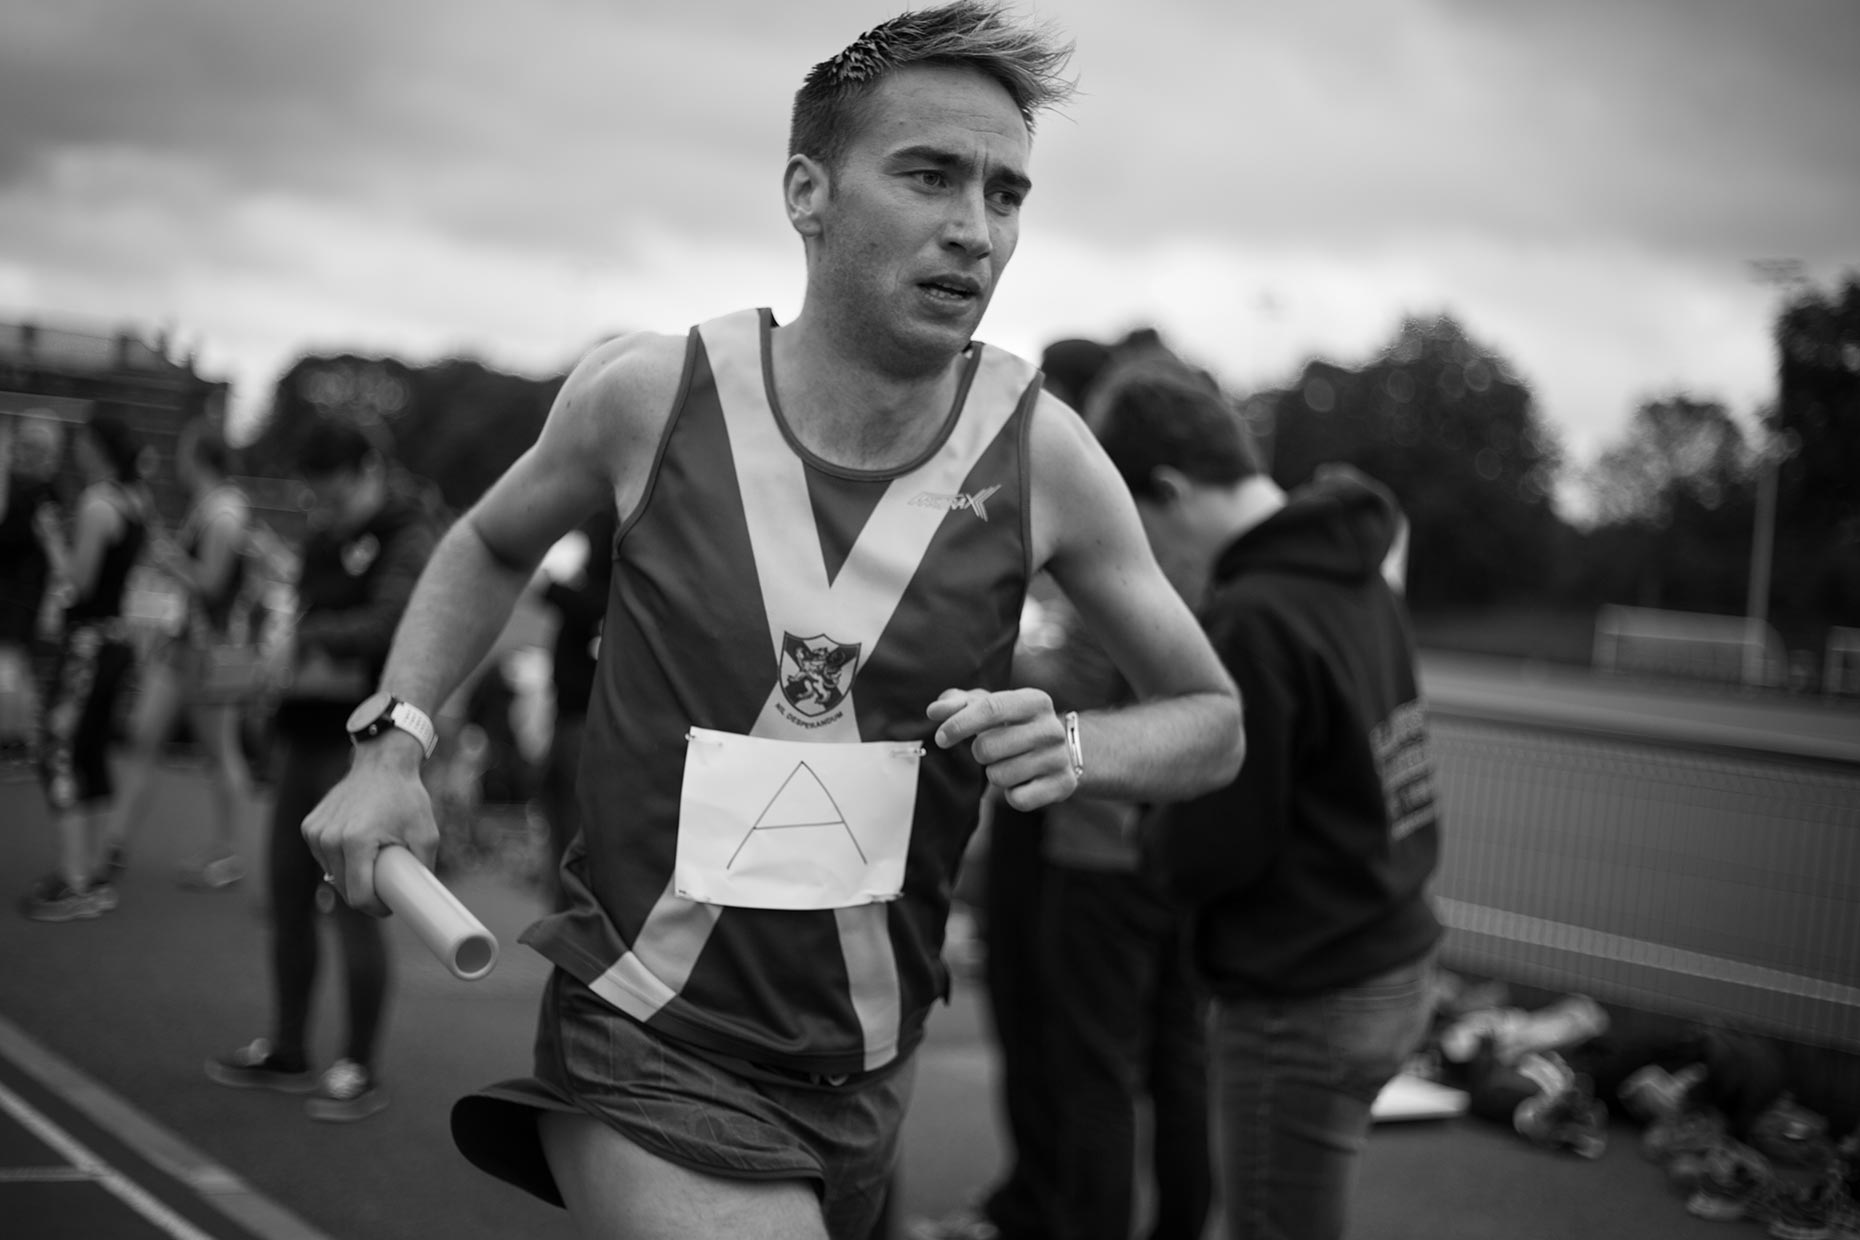 Bellahouston Harriers runner on track, by Scotland photographer